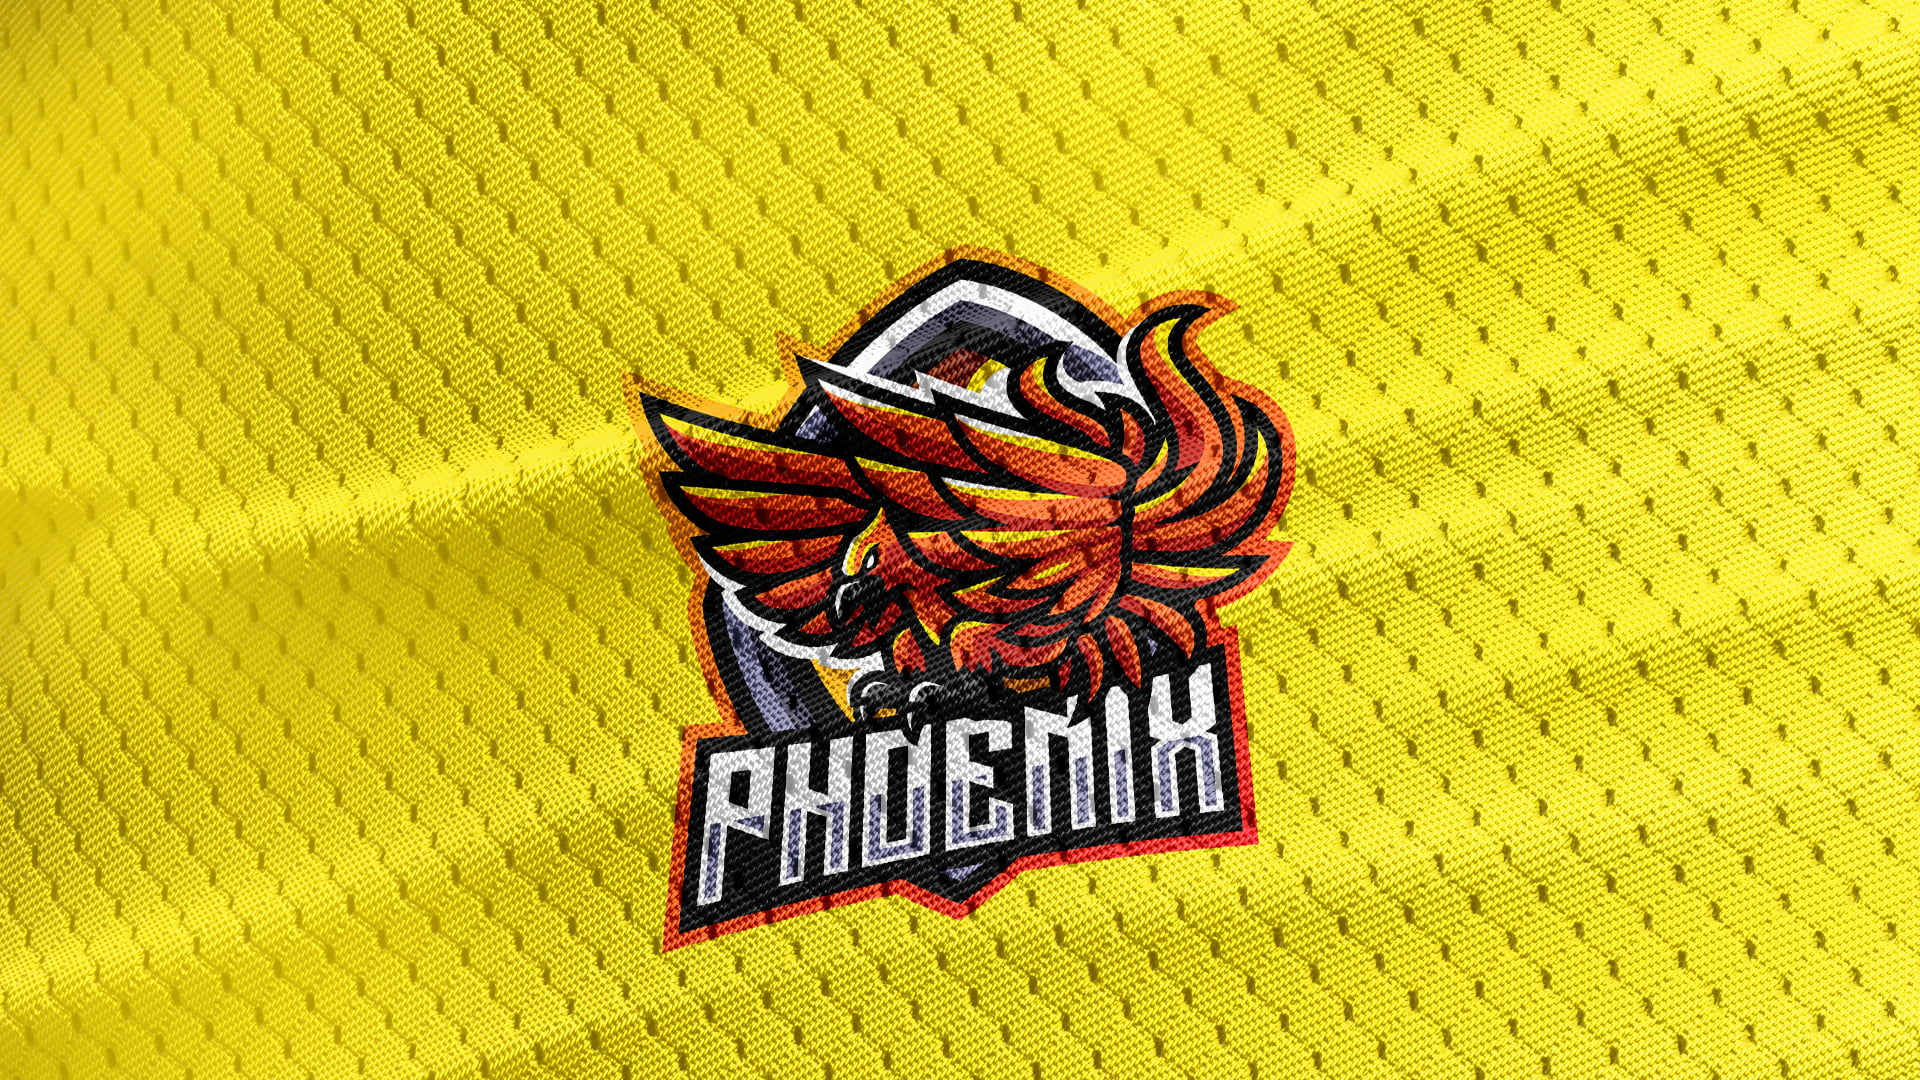 Yellow-Jersey-Texture-Free-Download-Phoenix-Mascot-Logo